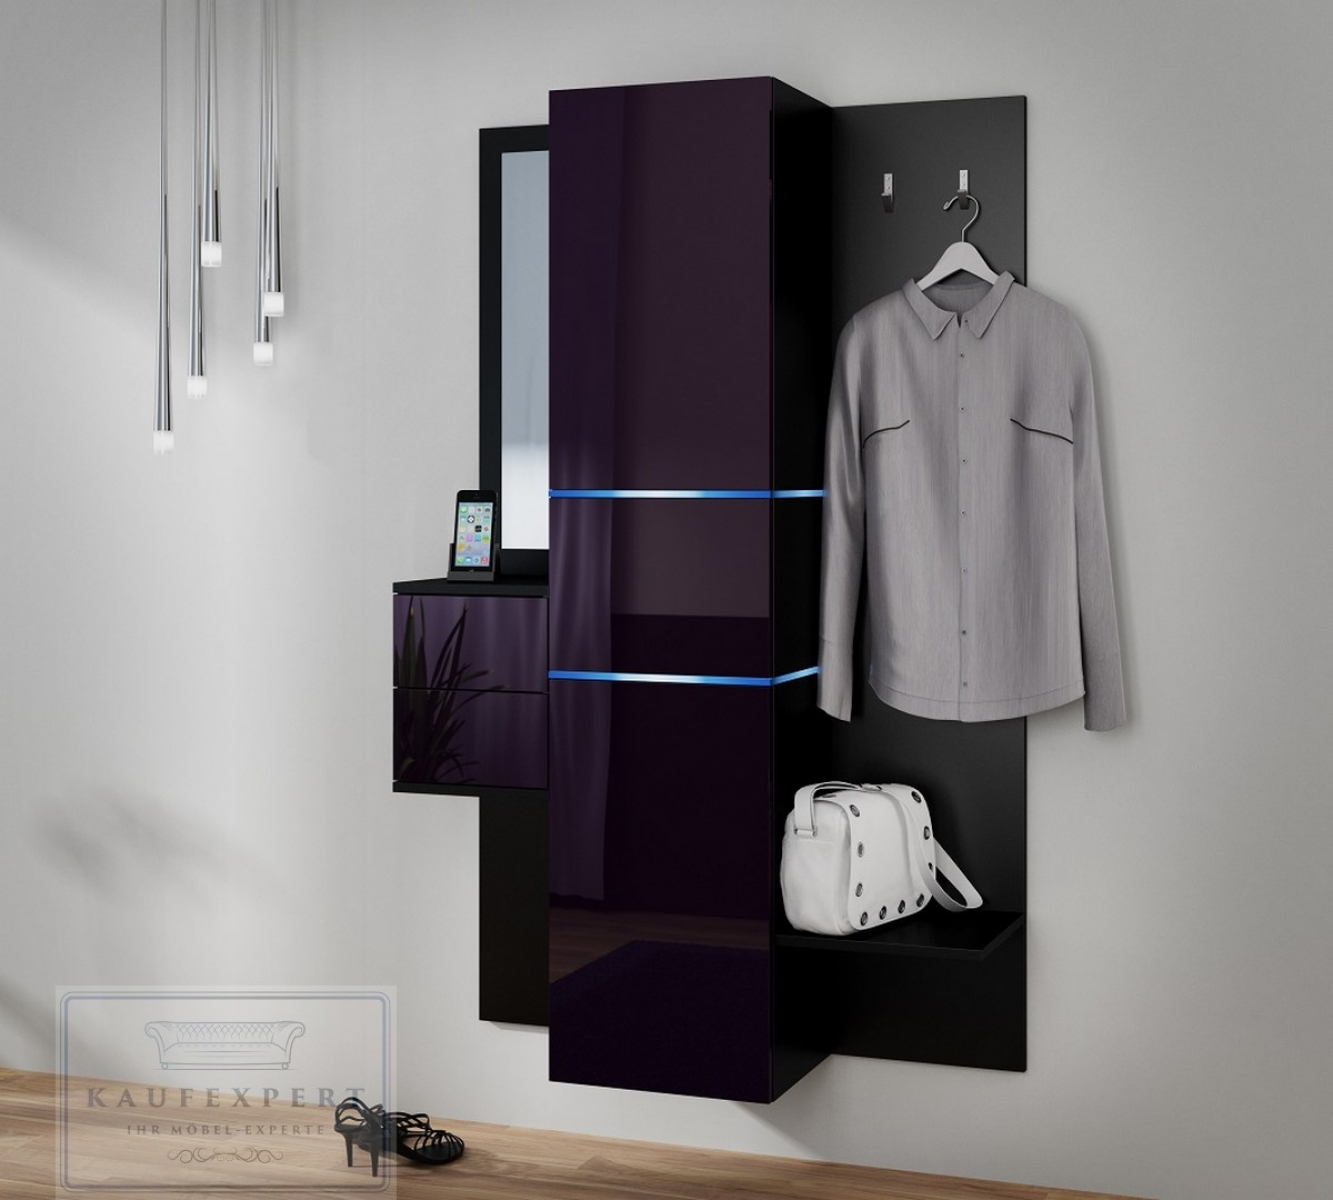 kaufexpert garderobe camino aubergine hochglanz schwarz. Black Bedroom Furniture Sets. Home Design Ideas